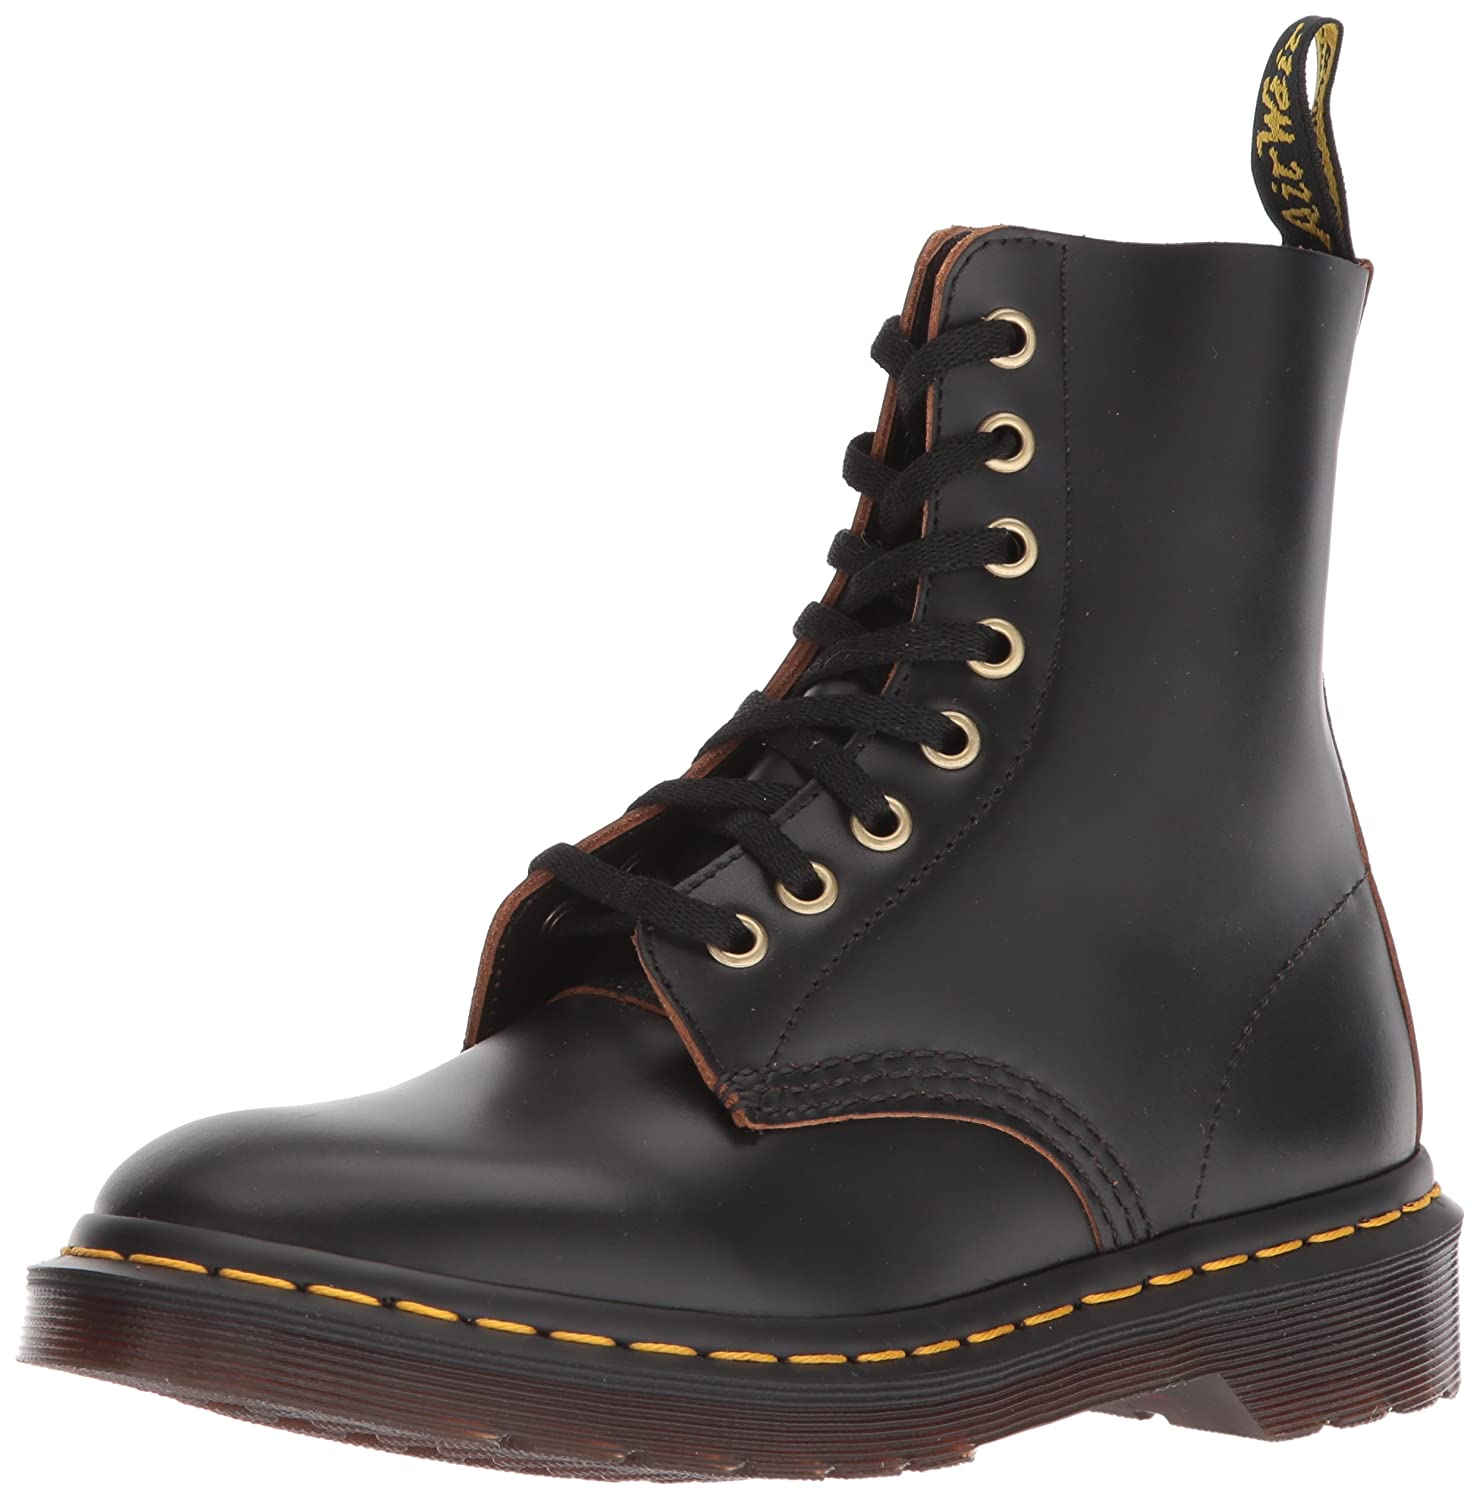 Dr. Martens Pascal B00TYKFWT6 7 M UK (Women's 9, Men's 8 US)|Black Vintage Smooth